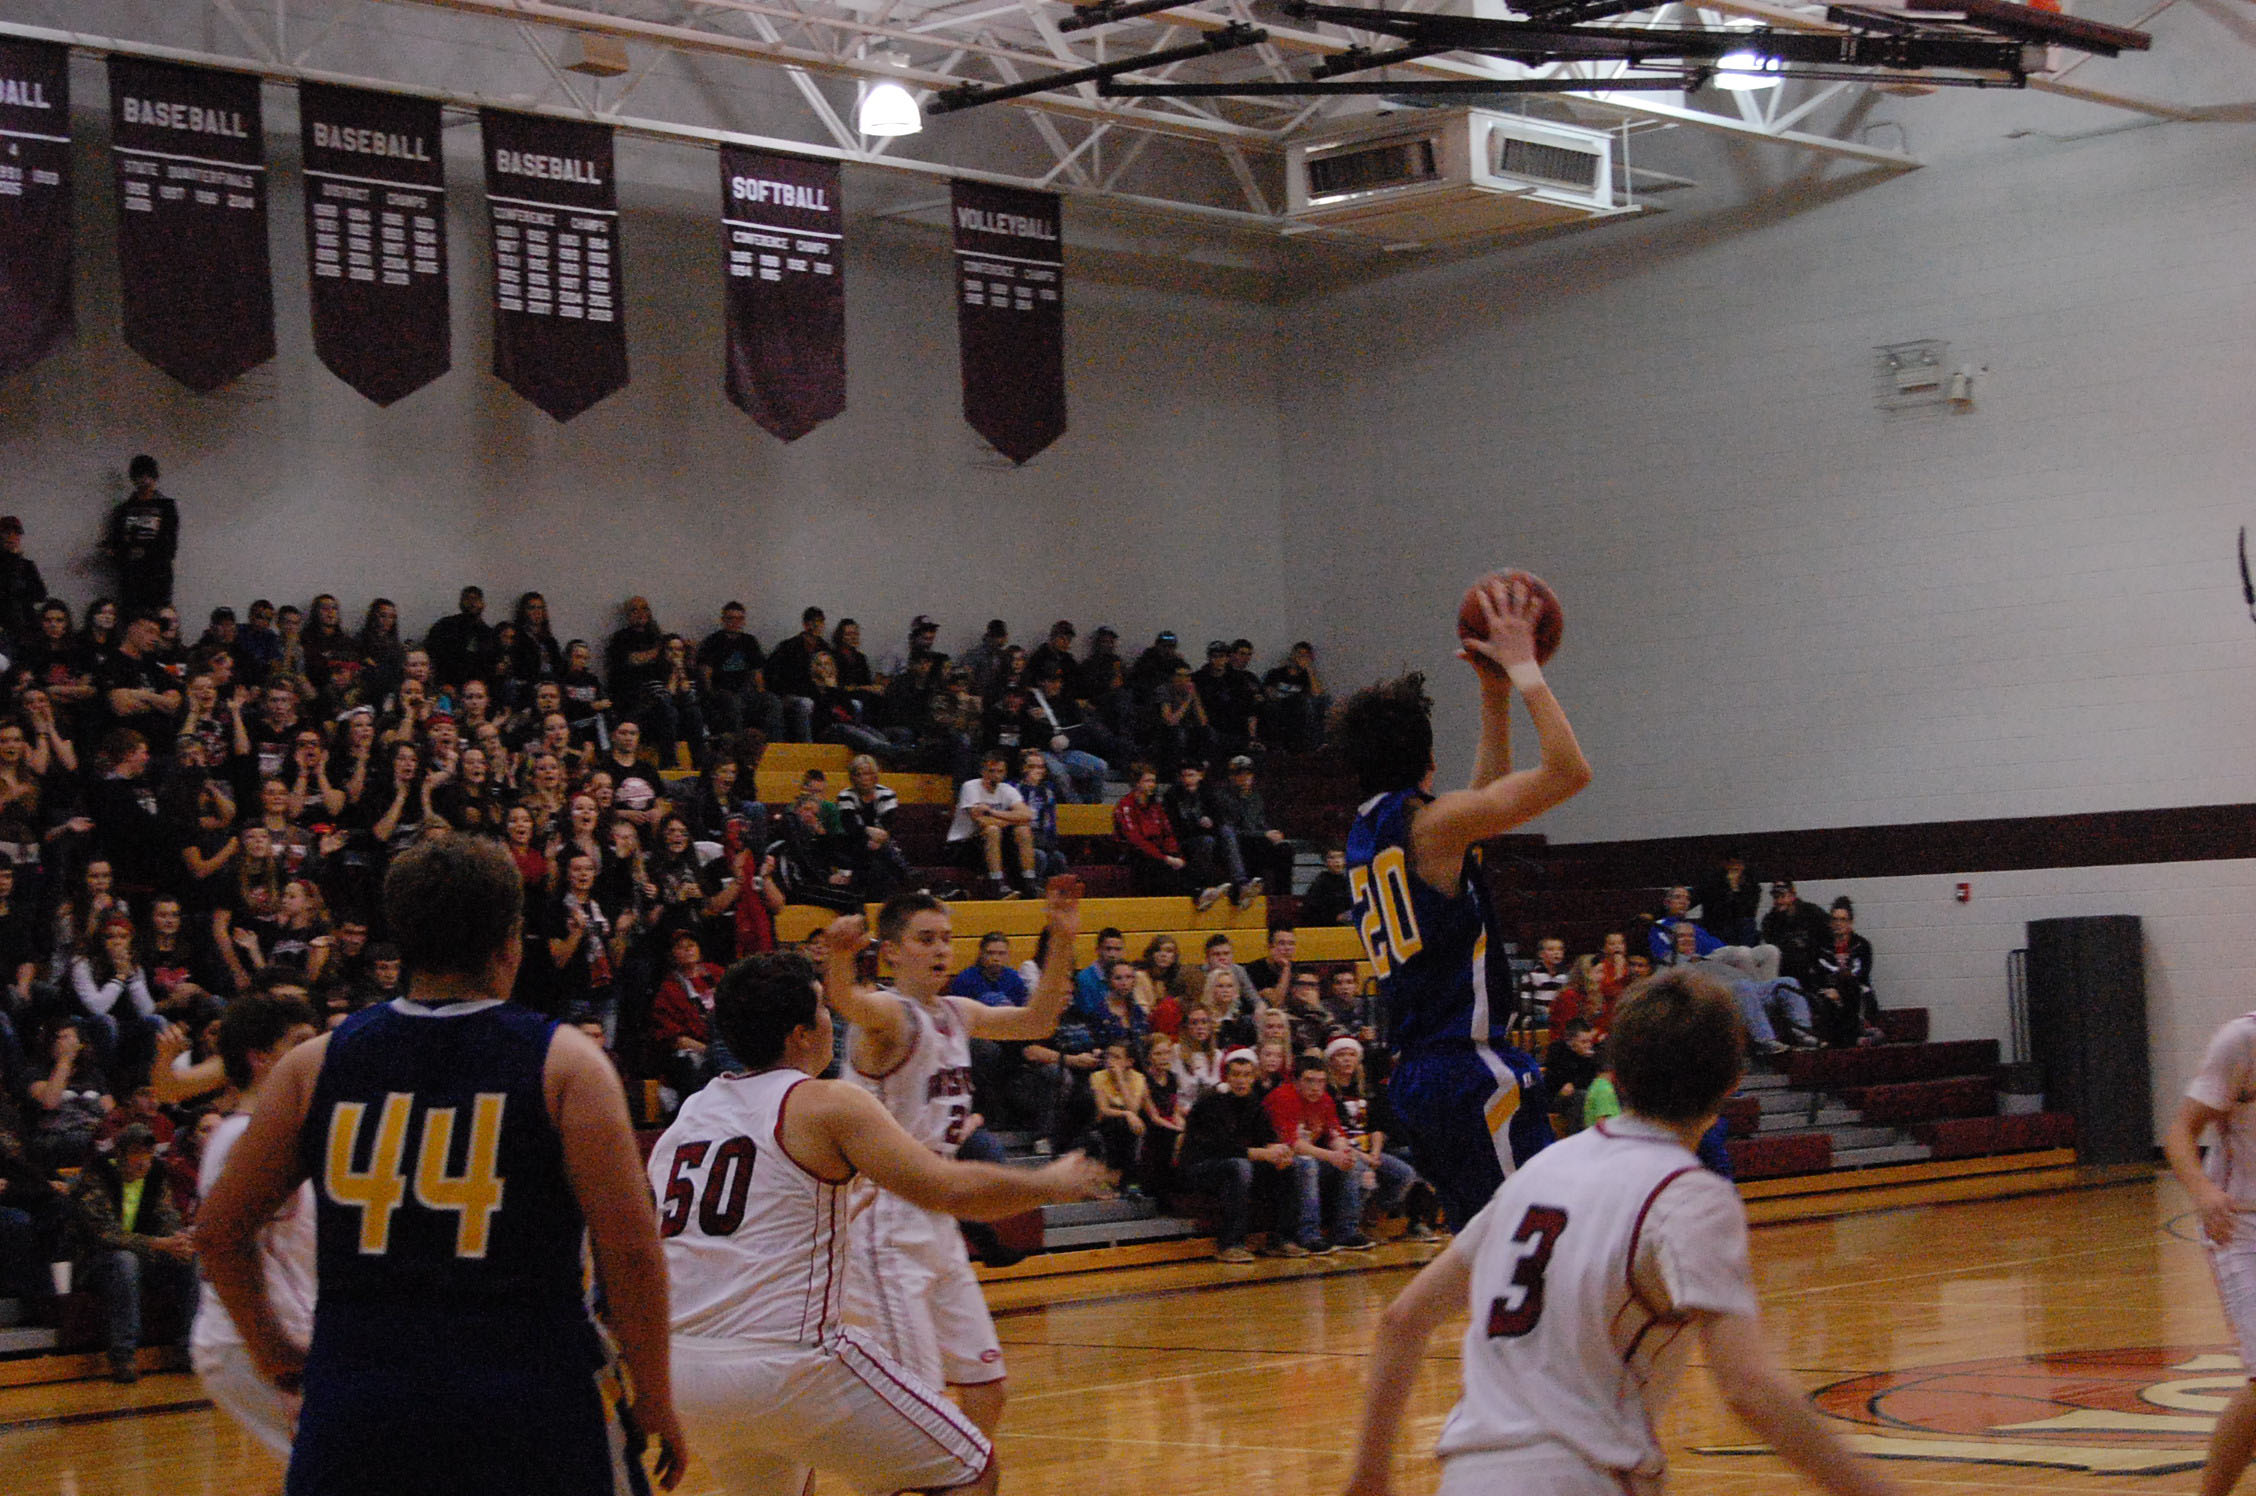 Ava freshman Anthony Rosa leaps high to receive a pass against Gainesville Saturday night in the Mansfield Tournament.